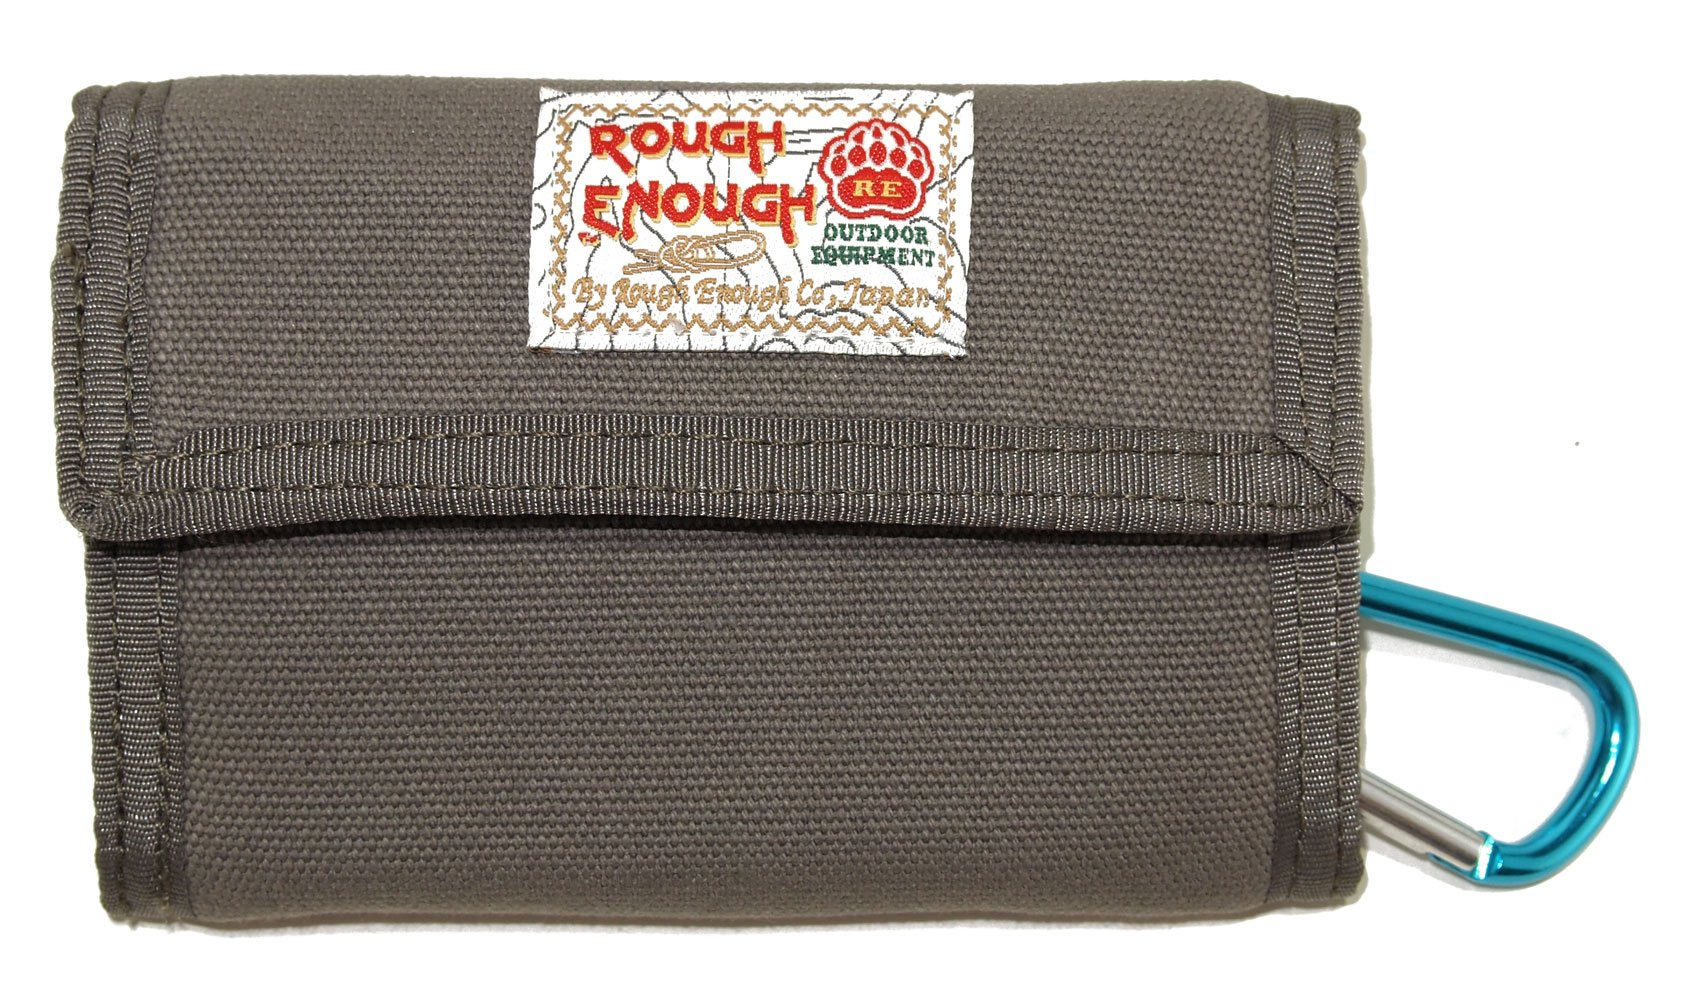 ROUGH ENOUGH Classic Stylish Vintage Fancy Heavy Canvas Wallet For Coins Purse Holder Organizer Case With Zippered Pockets Trifold Coin Pocket